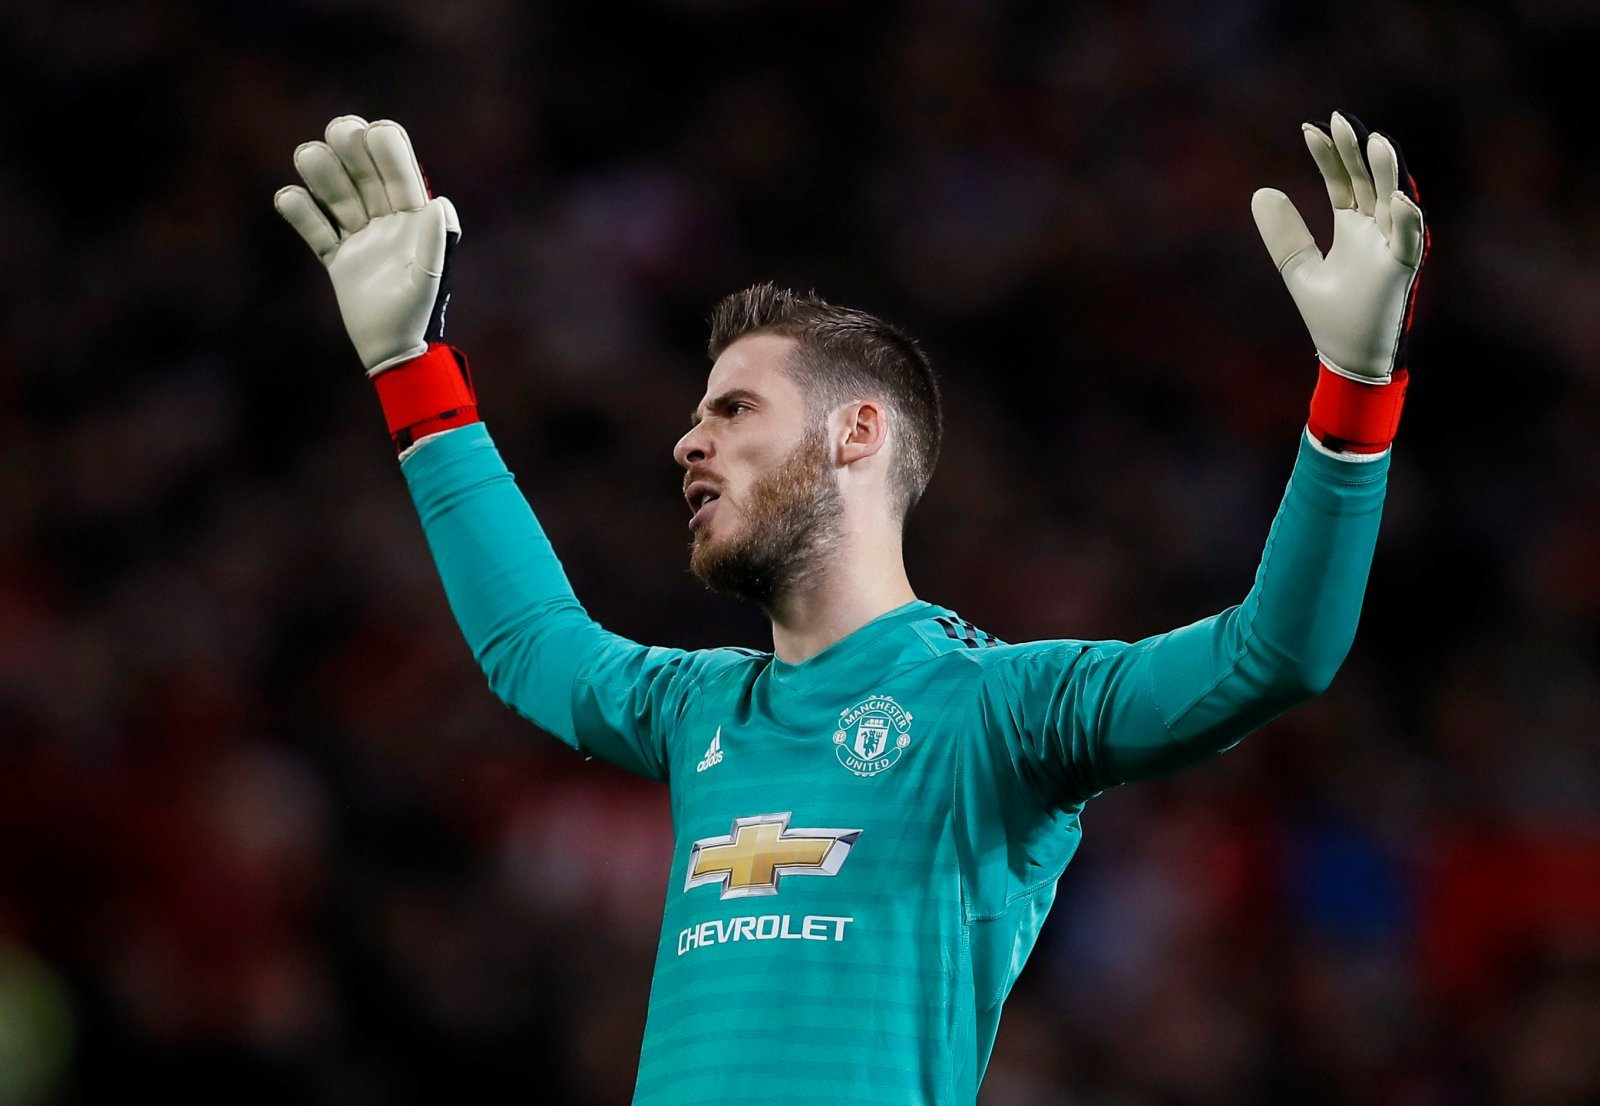 TT Introduces: Man United's David De Gea